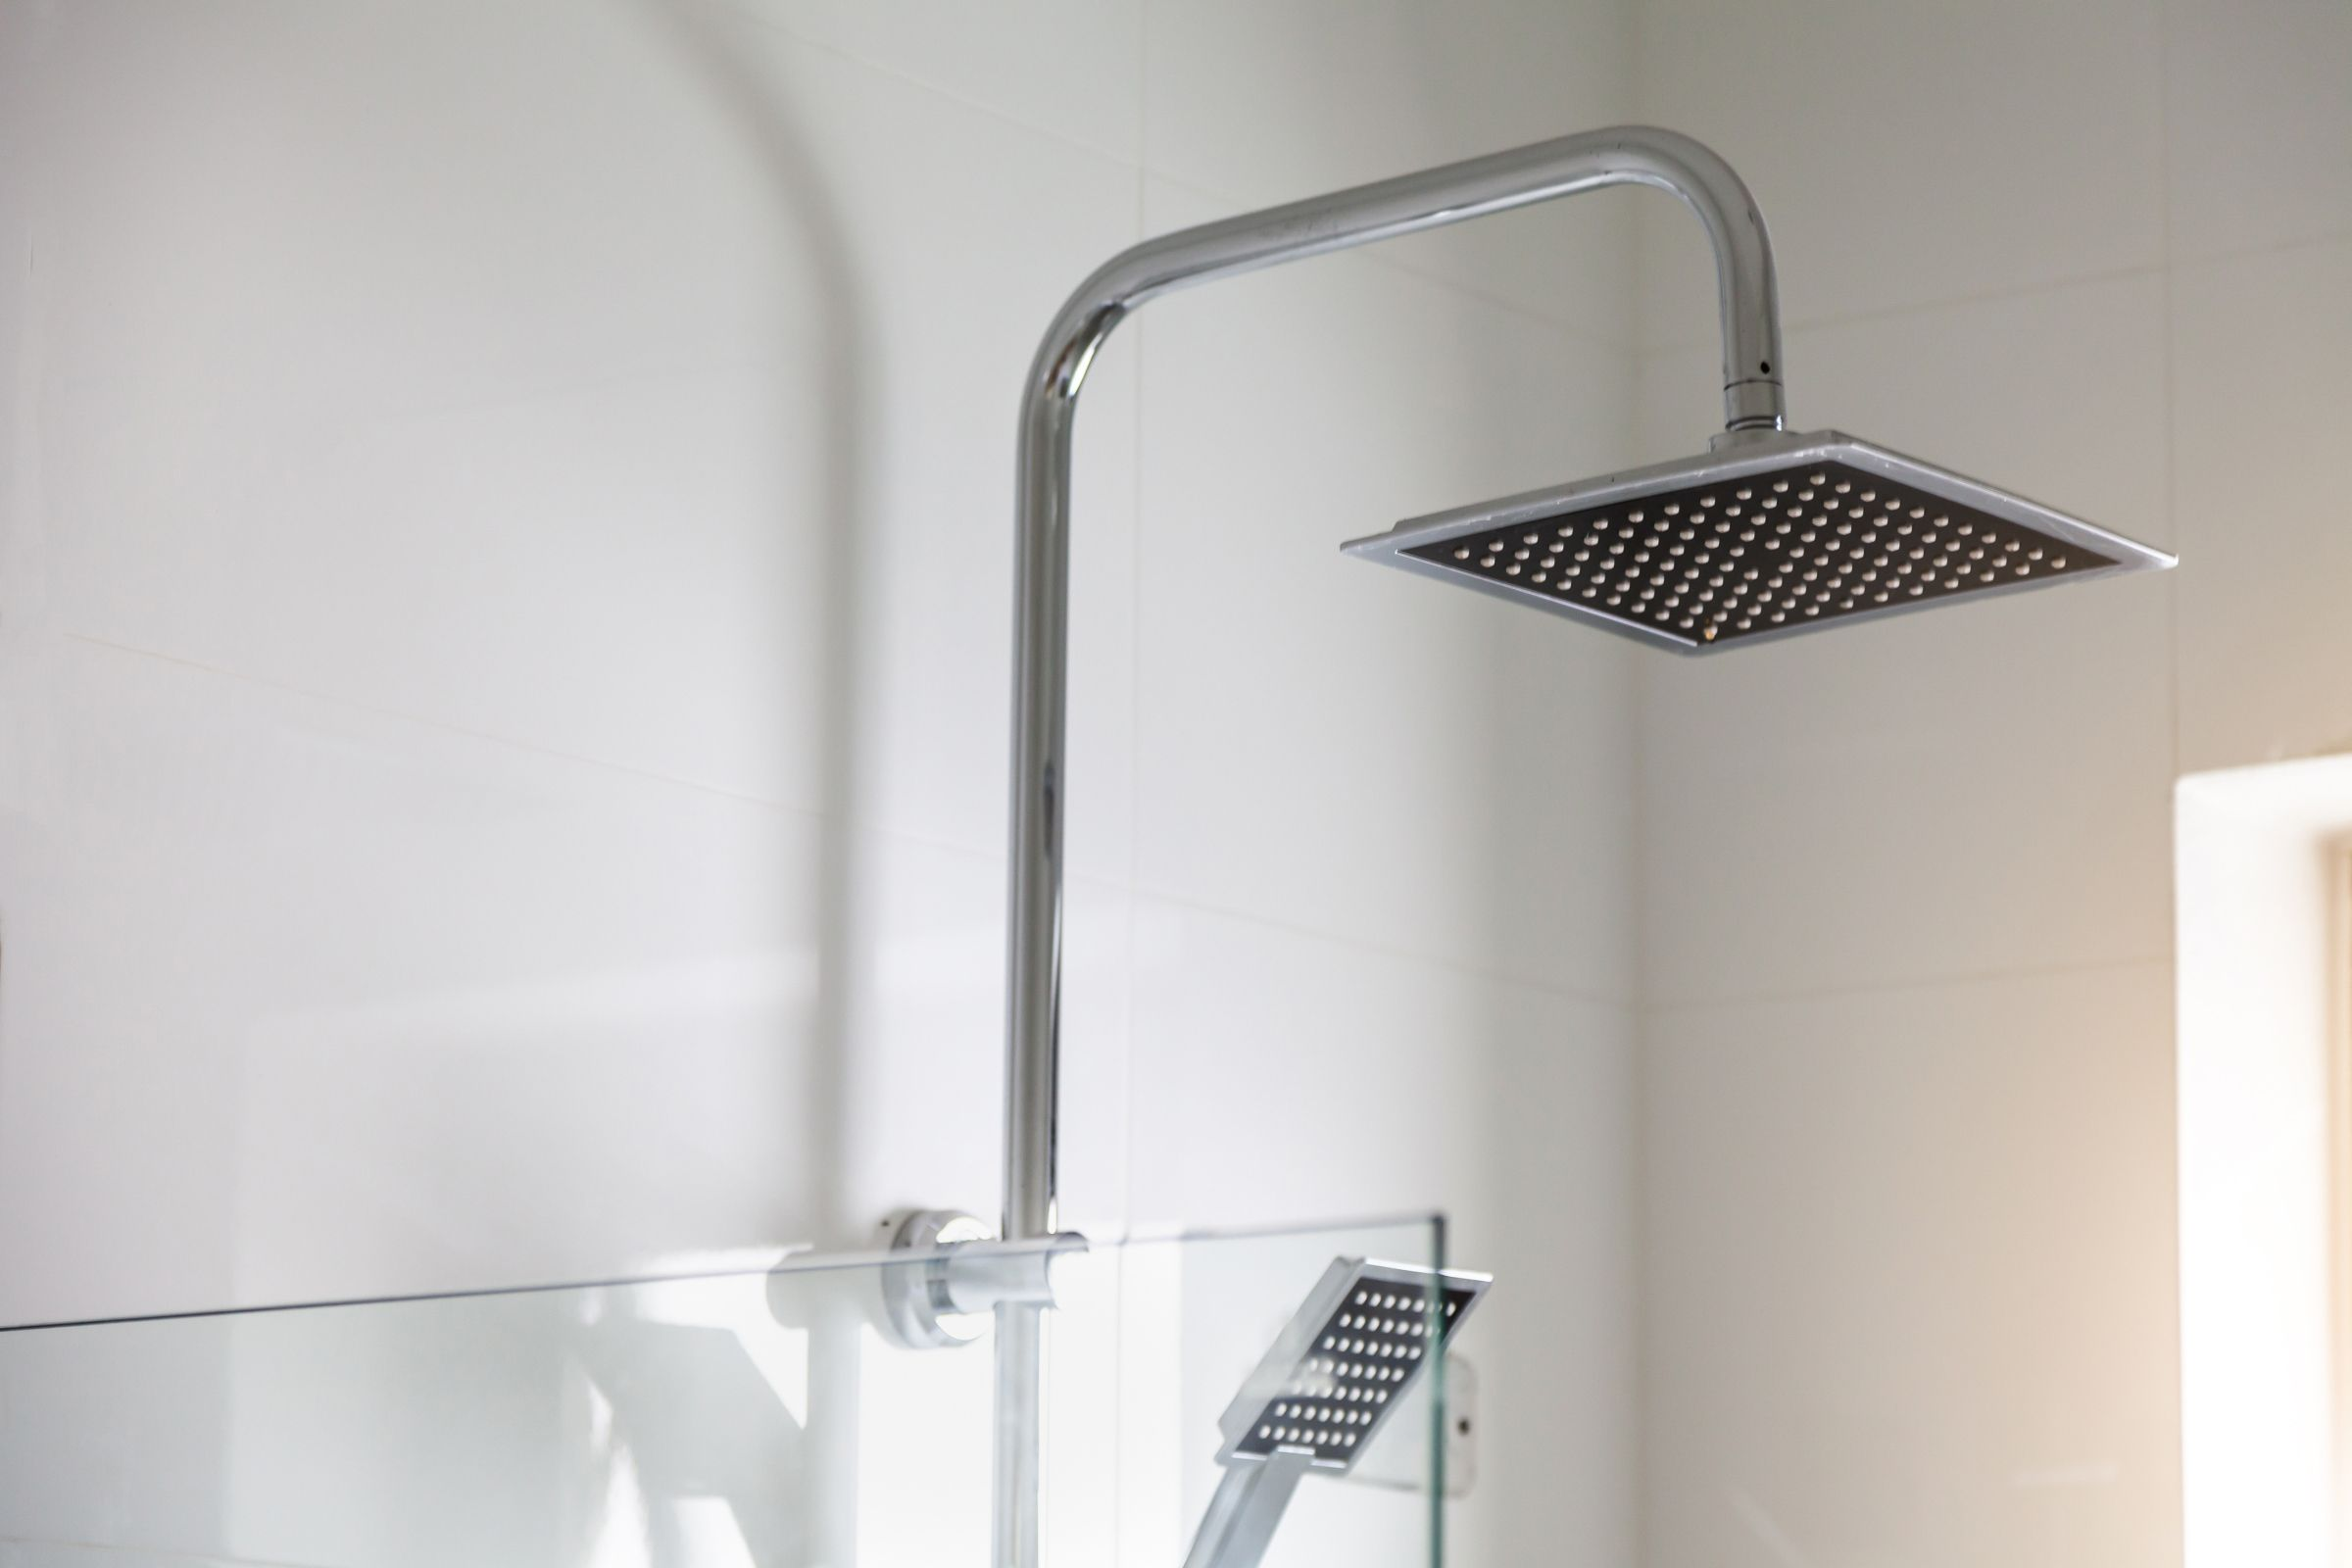 A Shower Arm Buying Guide